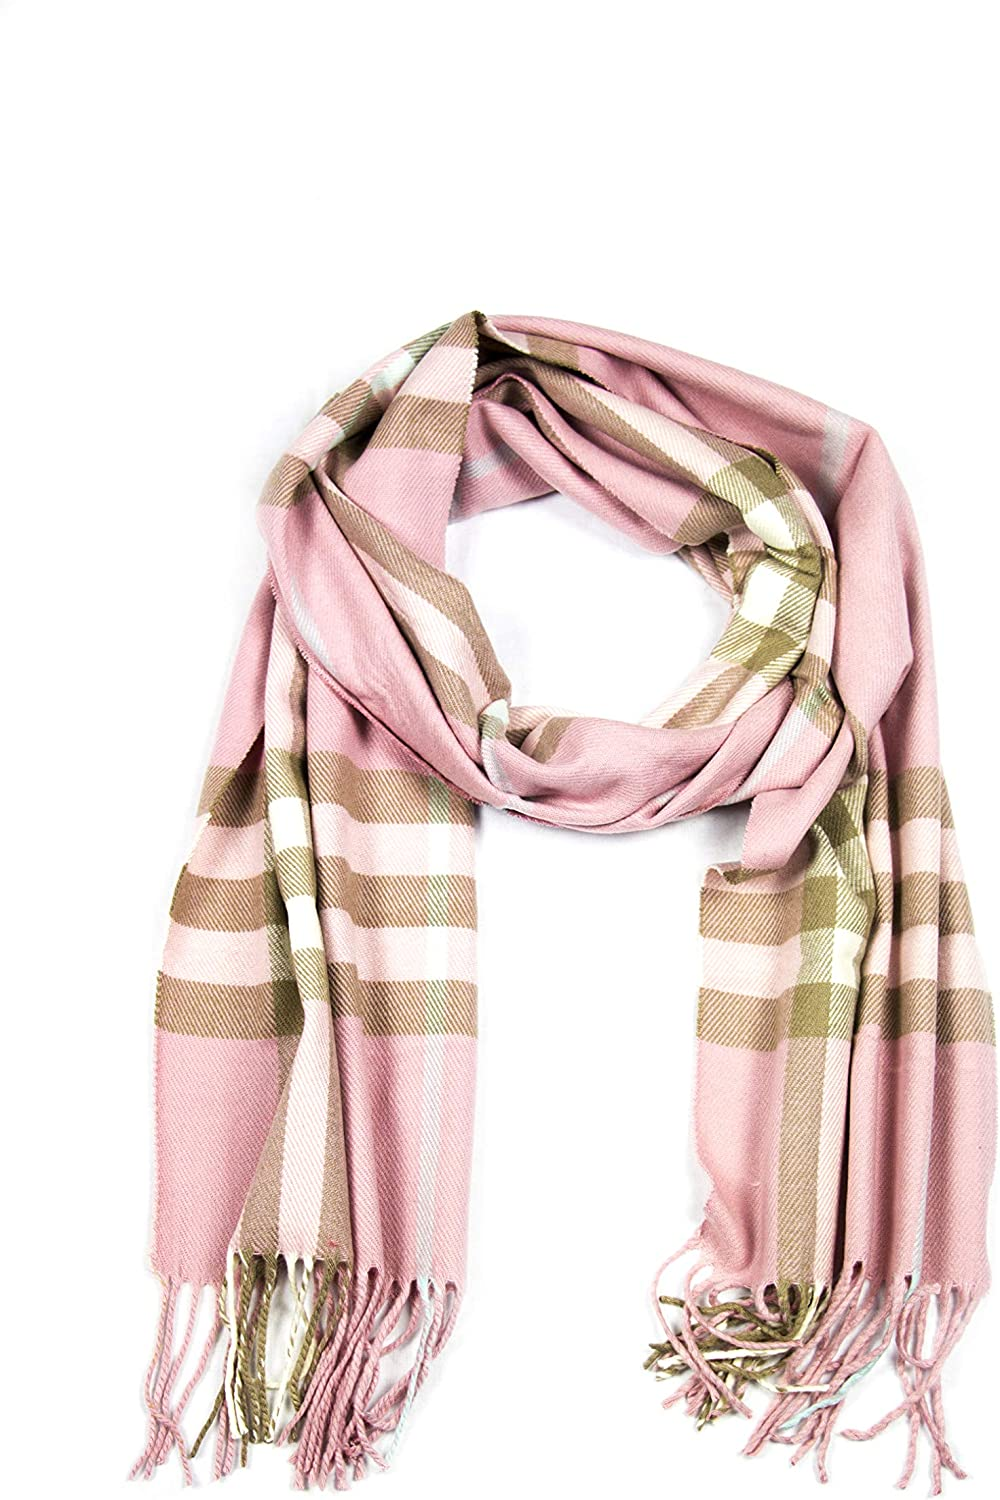 Sakkas Booker Cashmere Complete Free Shipping Feel Fixed price for sale Solid Wi Colored Unisex Scarf Winter